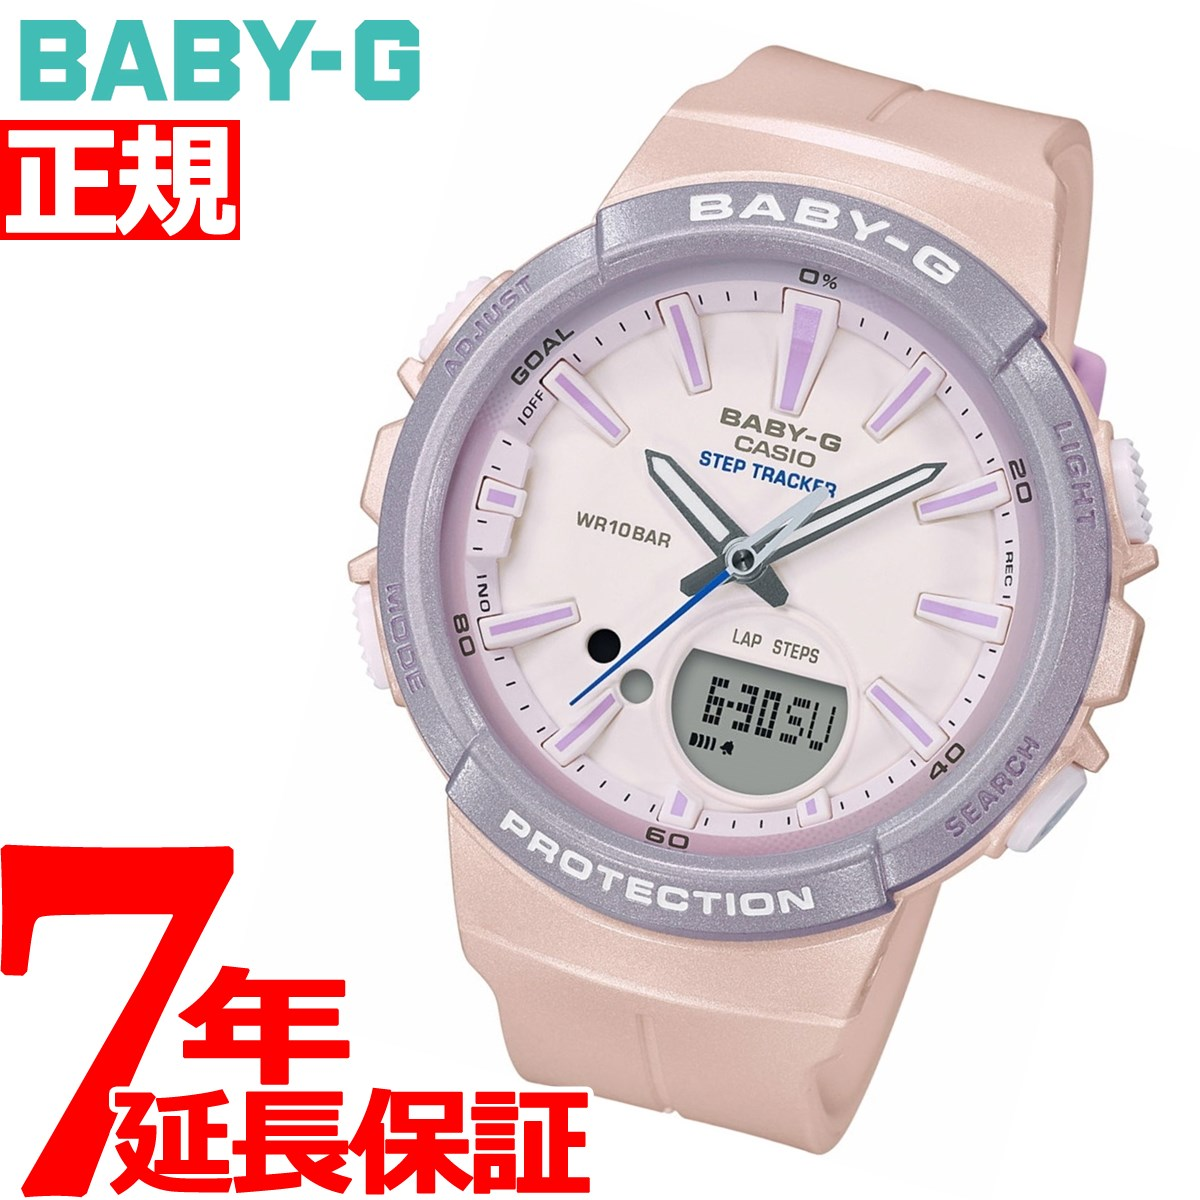 【SHOP OF THE YEAR 2018 受賞】BABY-G カシオ ベビーG レディース 腕時計 ピンク BGS-100 for running STEP TRACKER BGS-100SC-4AJF【2018 新作】